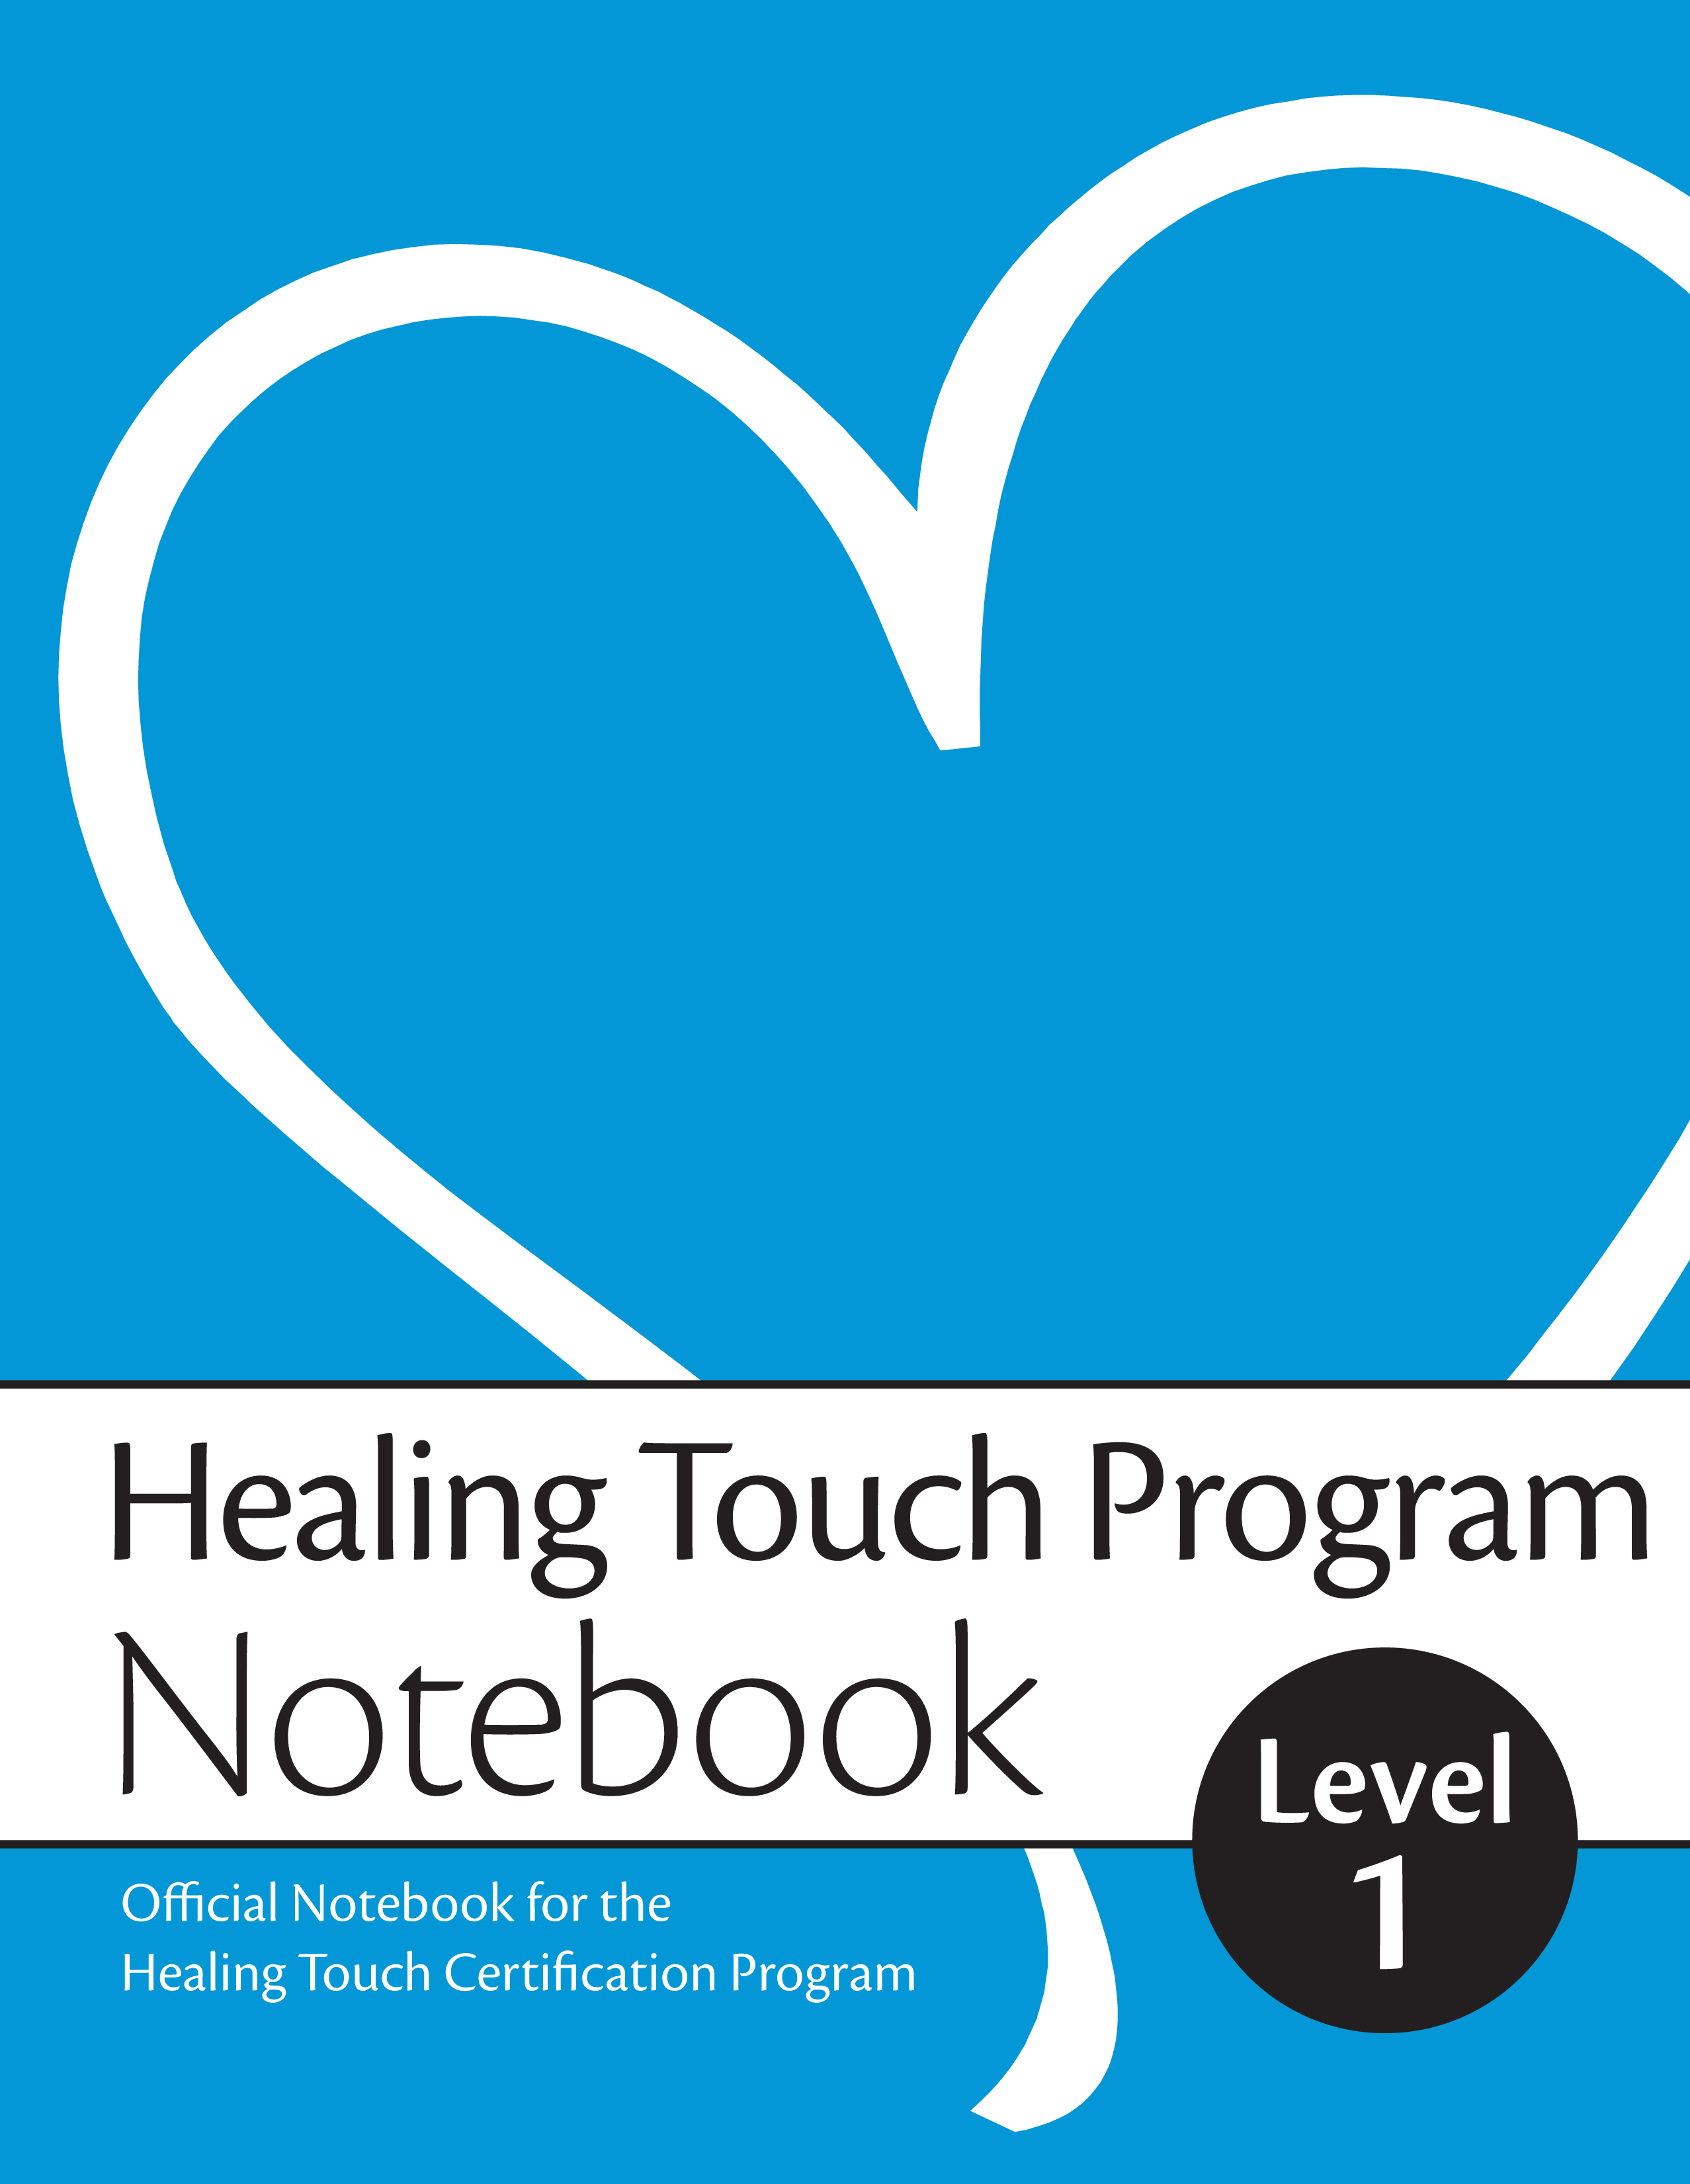 Level 1 Notebook